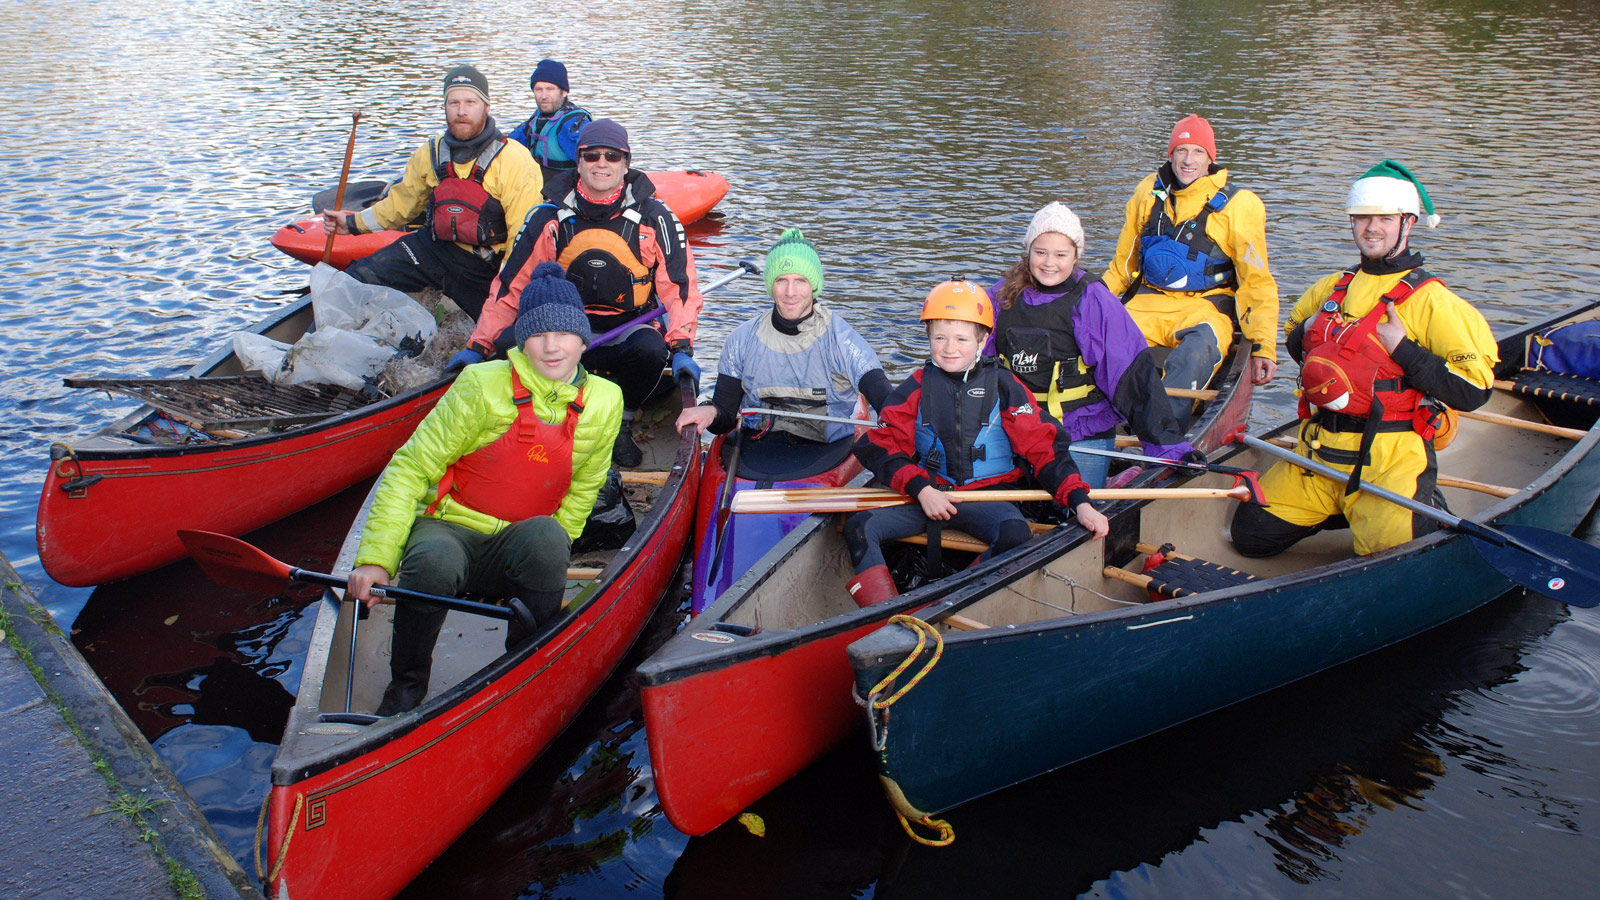 litter-pick-8-canoeists-1600